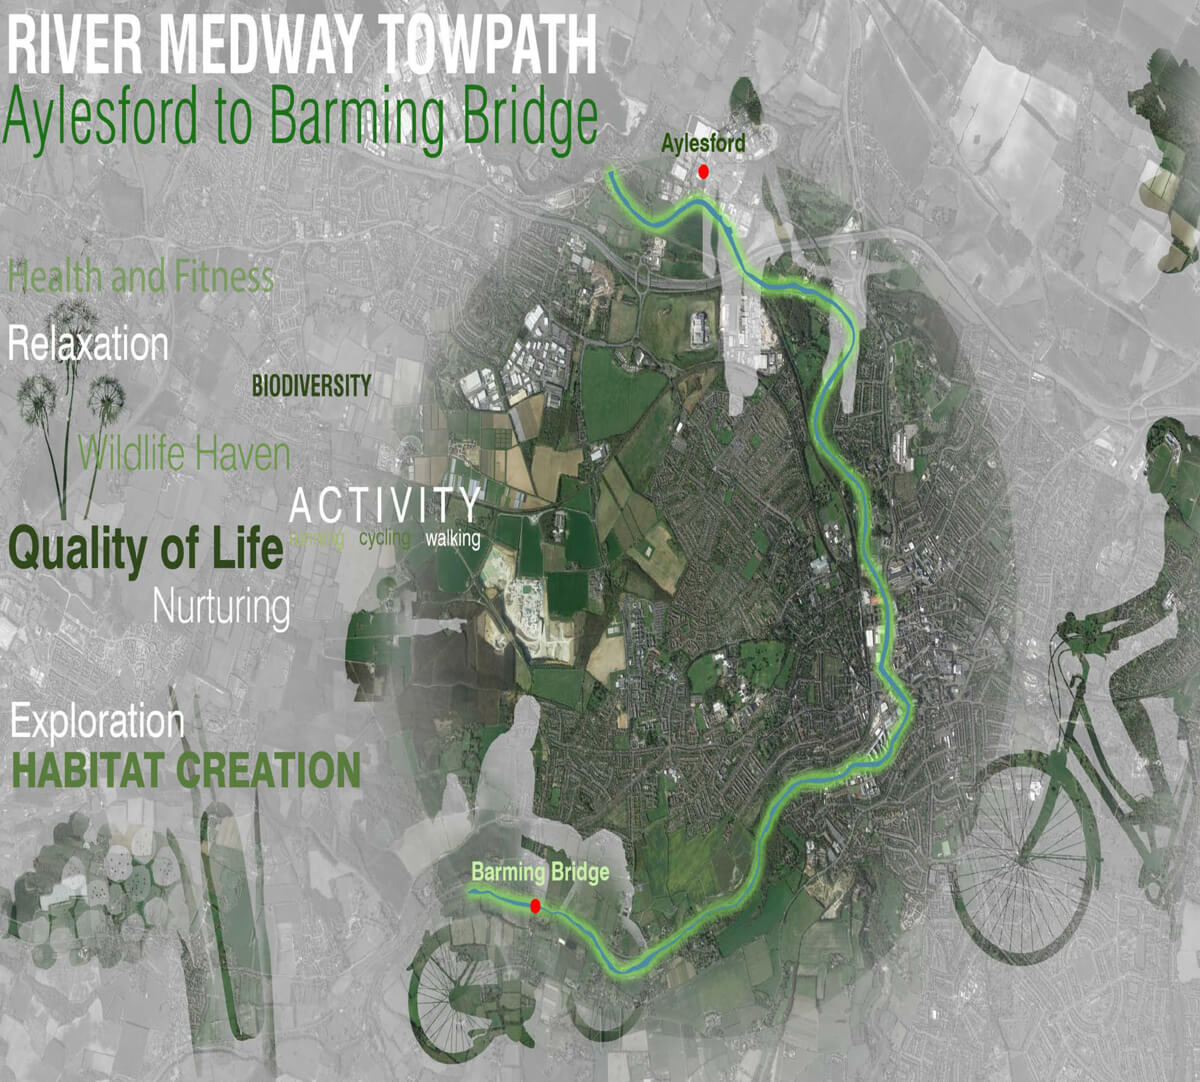 River Medway Towpath Mapping